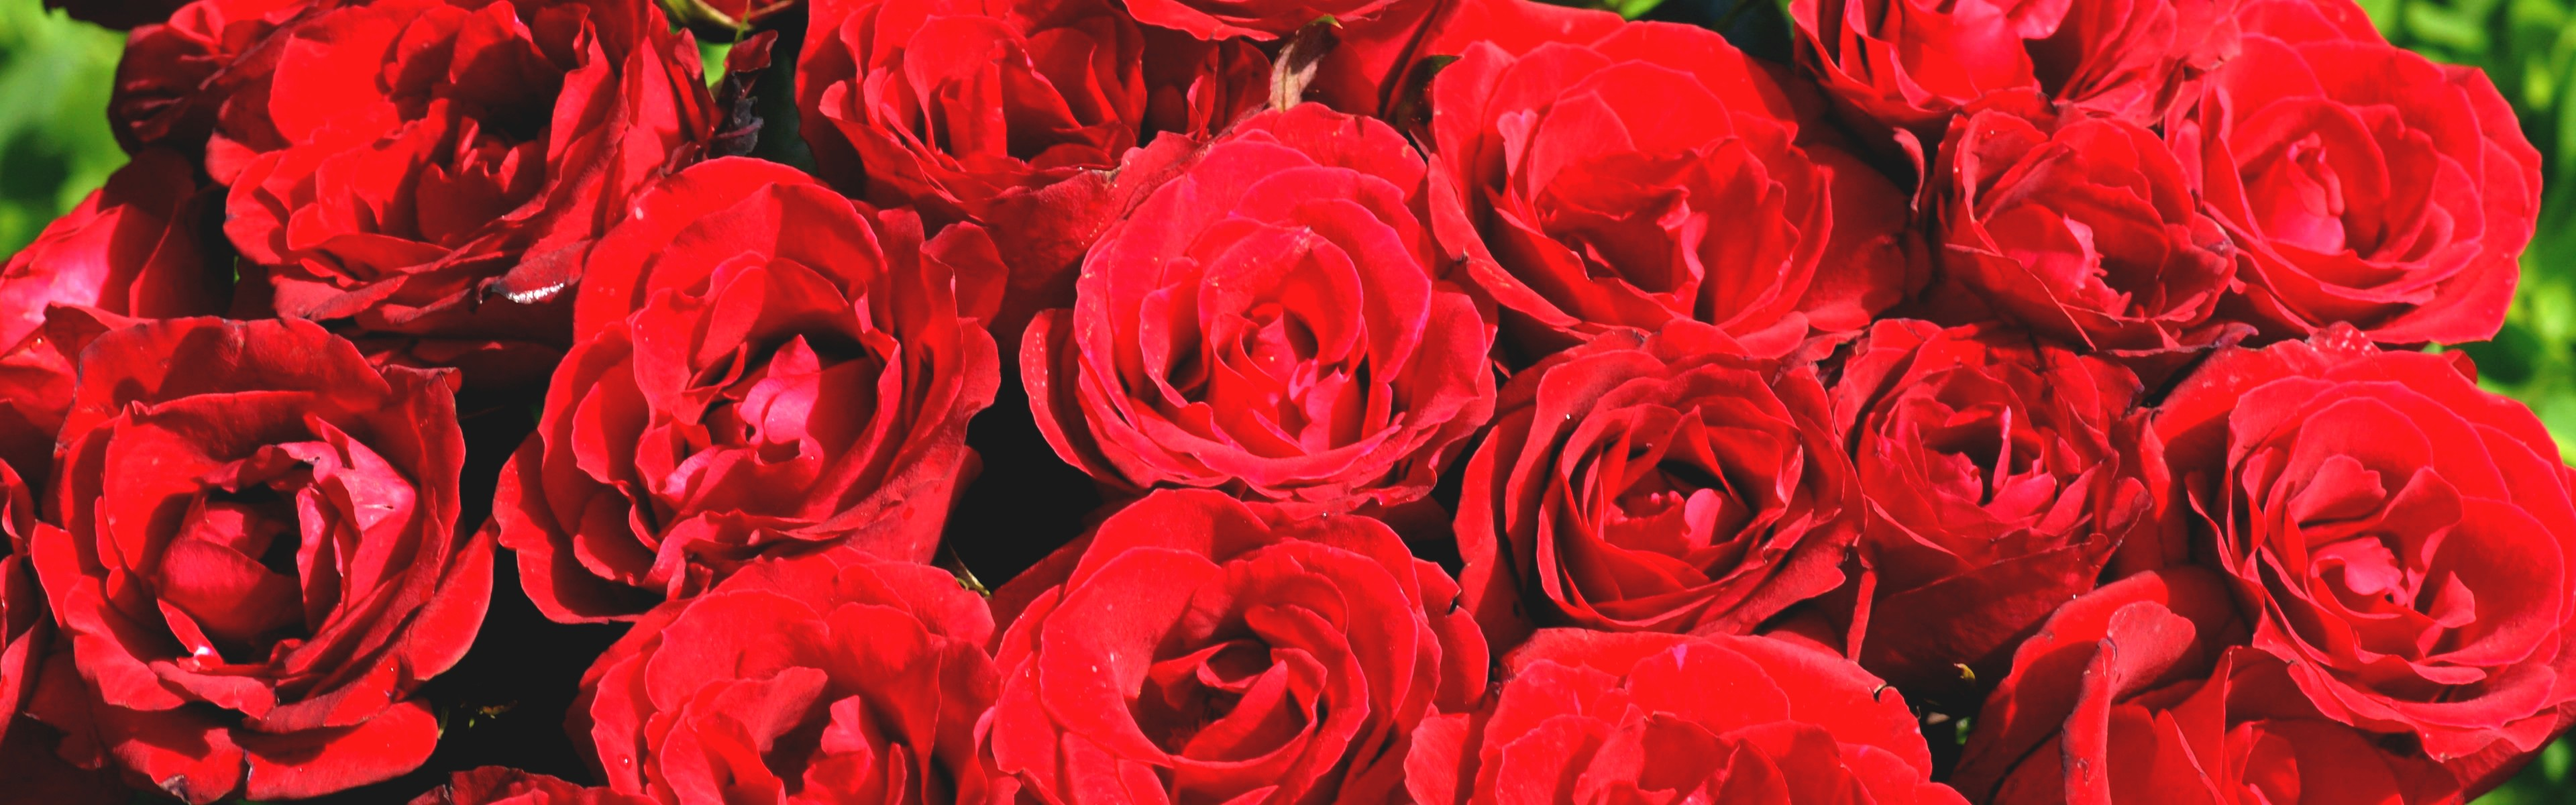 Red Roses Tumblr Quotes